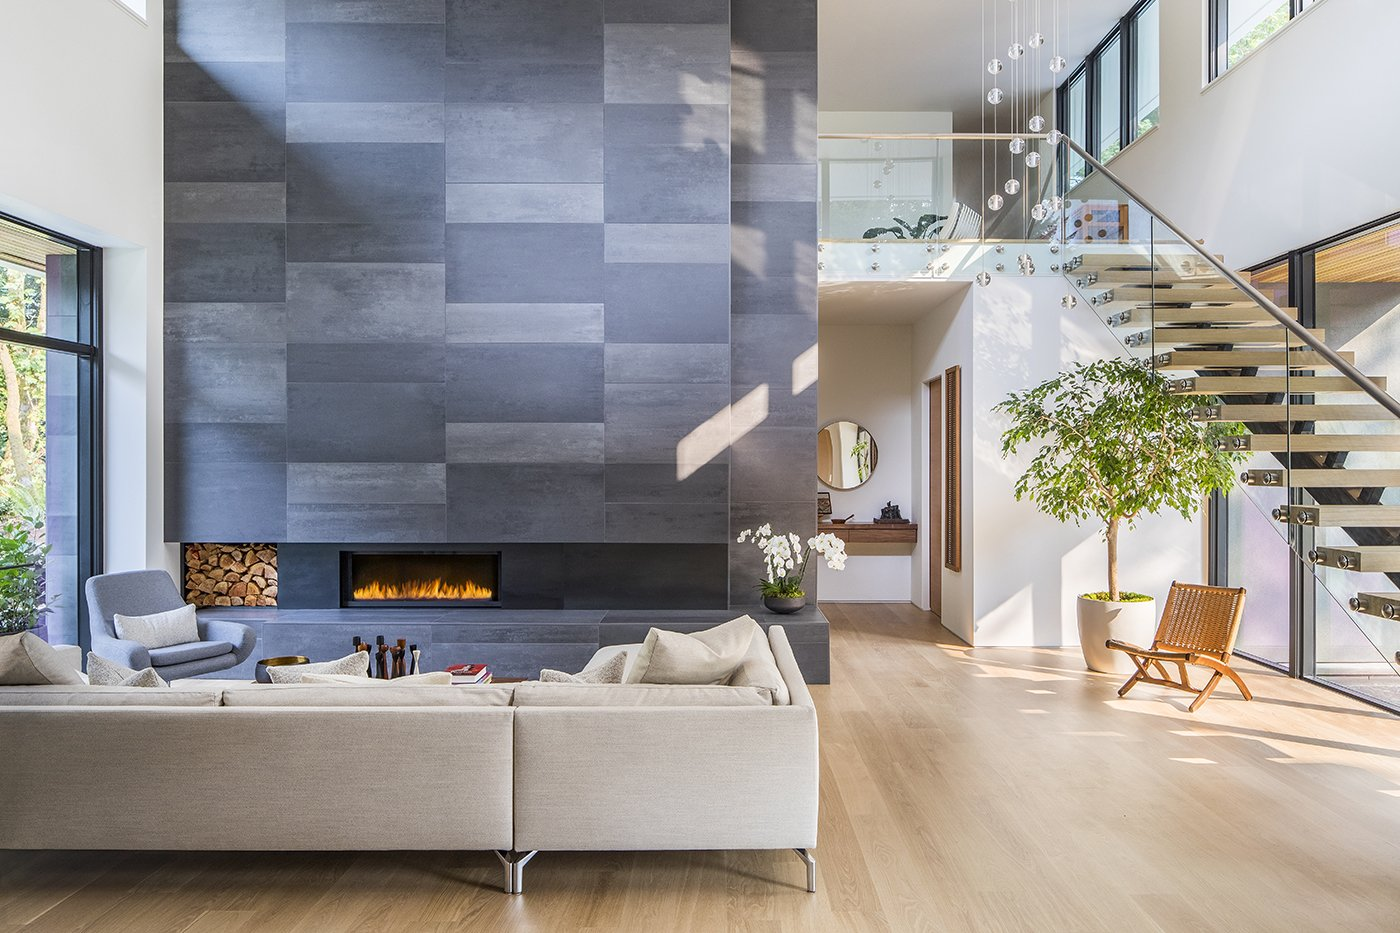 Living Room, Pendant Lighting, Light Hardwood Floor, Sectional, Gas Burning Fireplace, and Standard Layout Fireplace The double height hearth divides the main living spaces from the private bedrooms.   Wildwood by Giulietti / Schouten AIA Architects